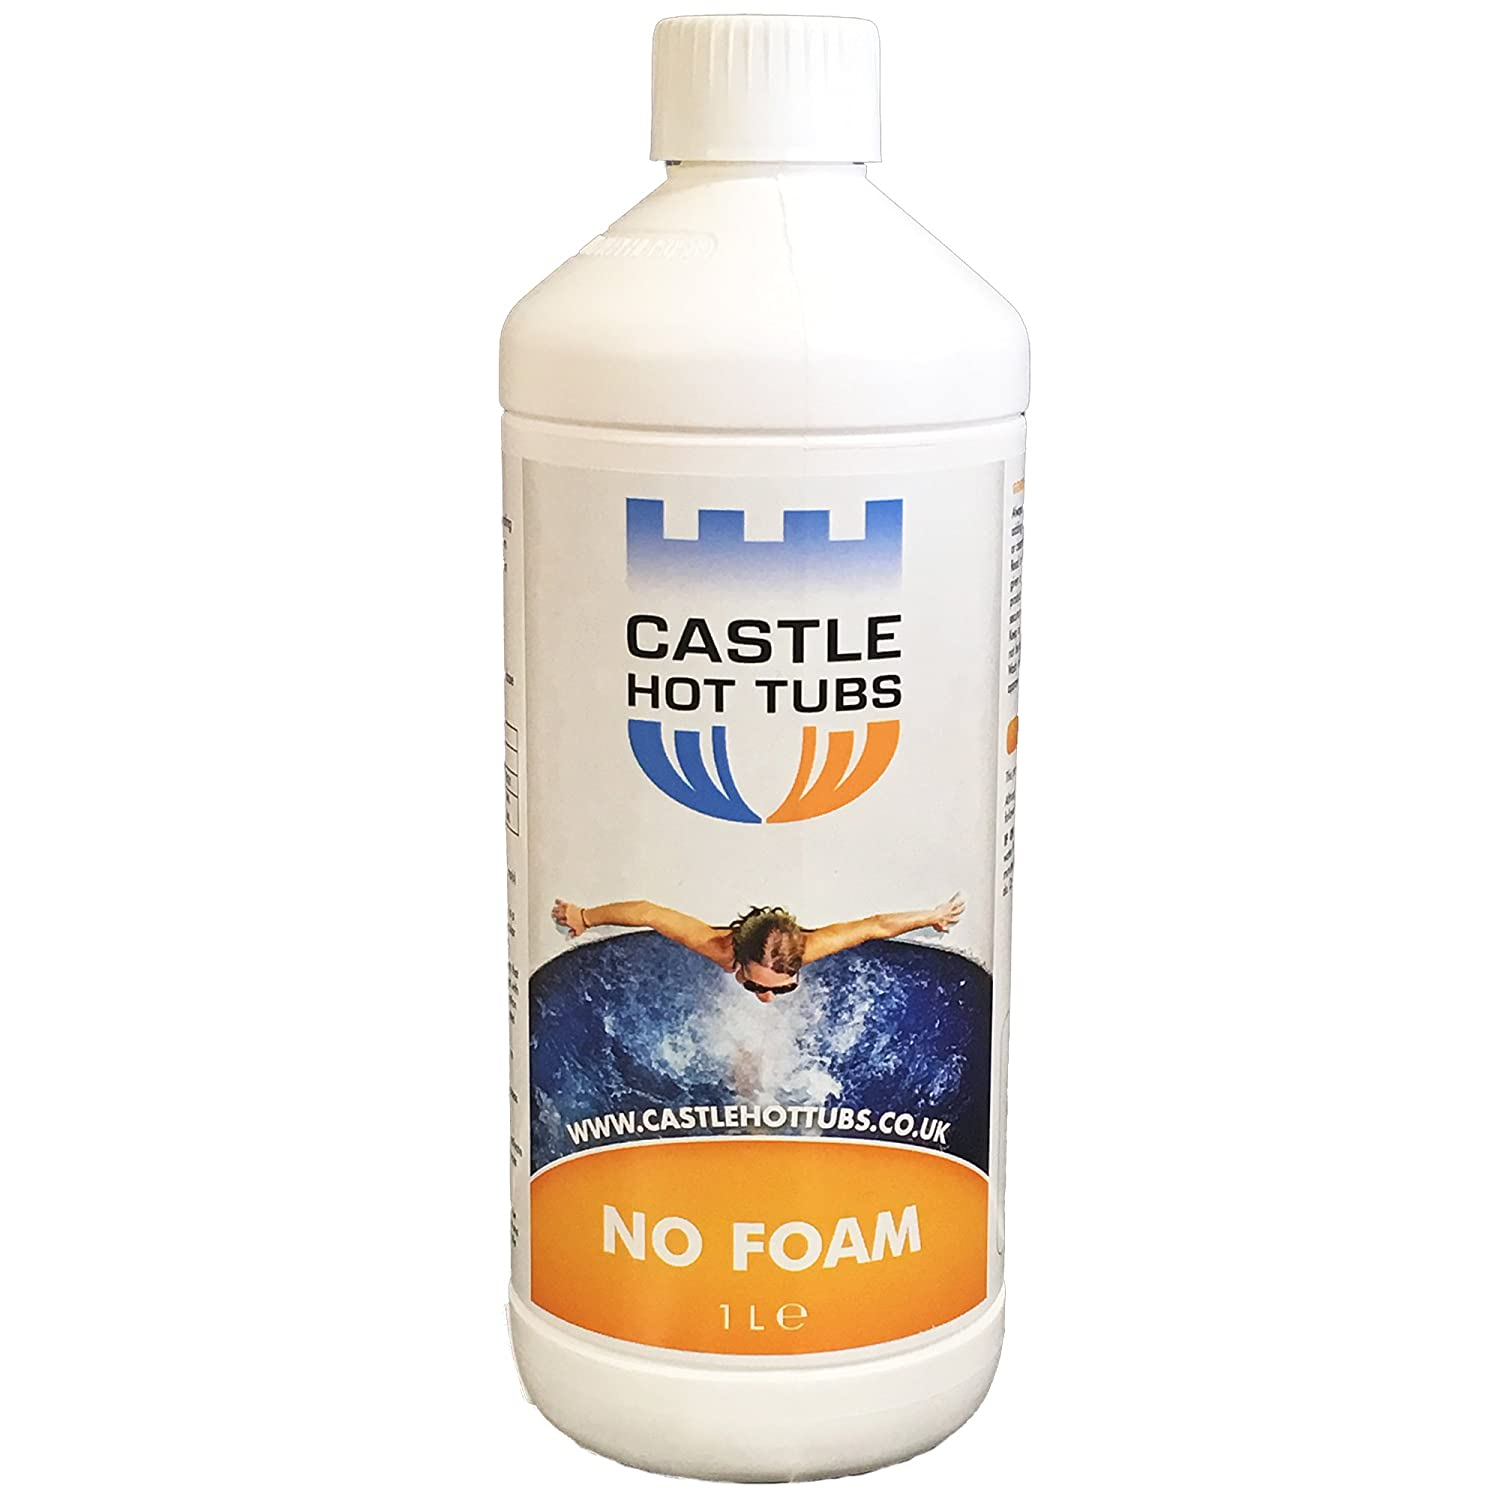 1 LITRE NO FOAM CASTLEHOTTUBS DE- FOAMER ANTI HOT TUB SPA HOTTUBS AWAY TUBS